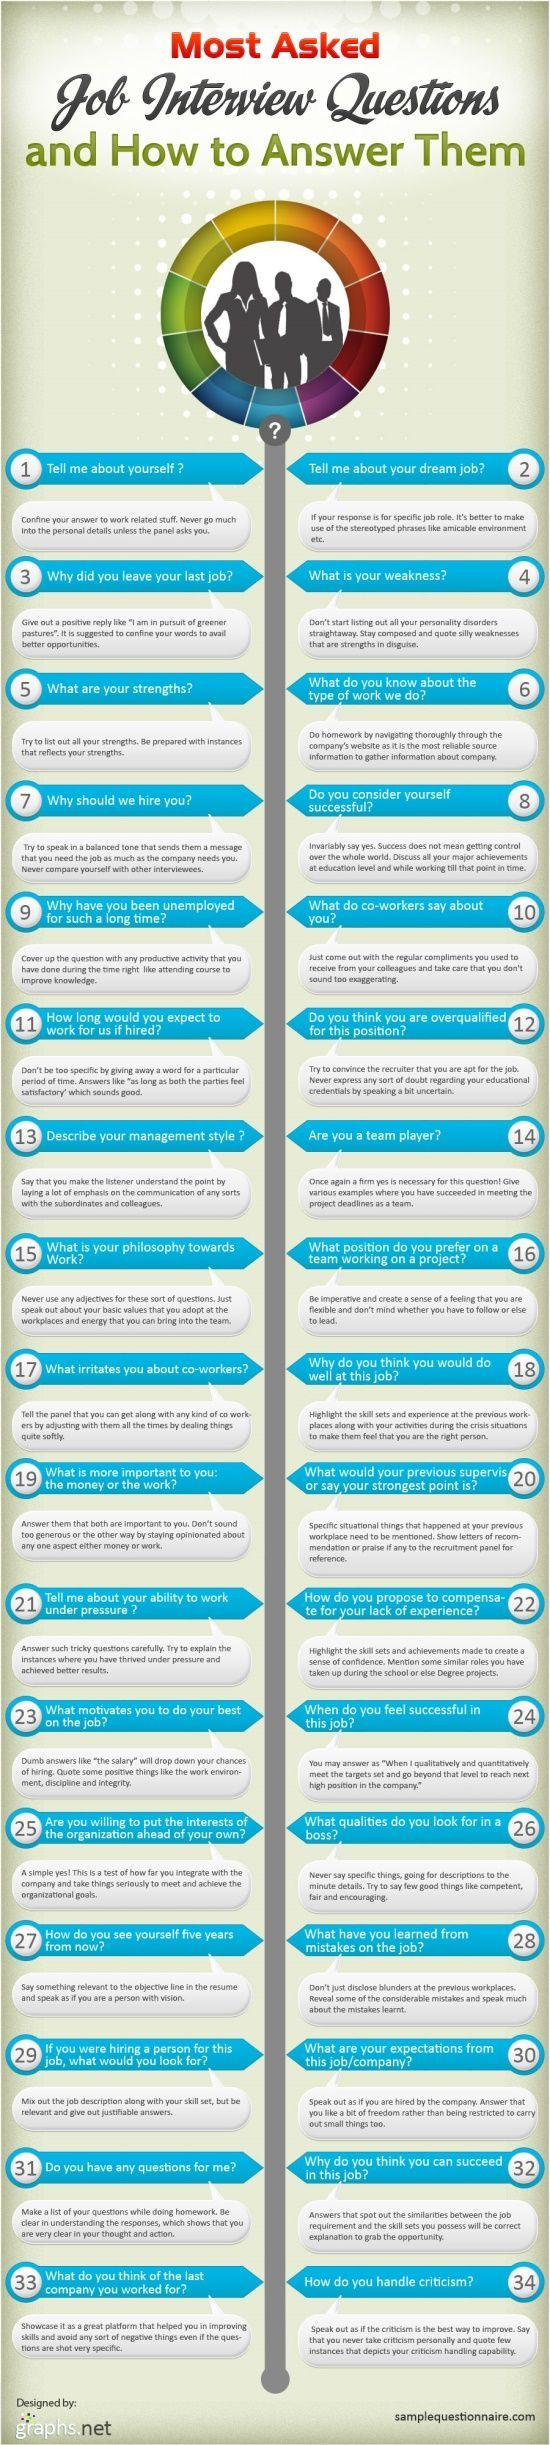 Job interview questions and how to answer them